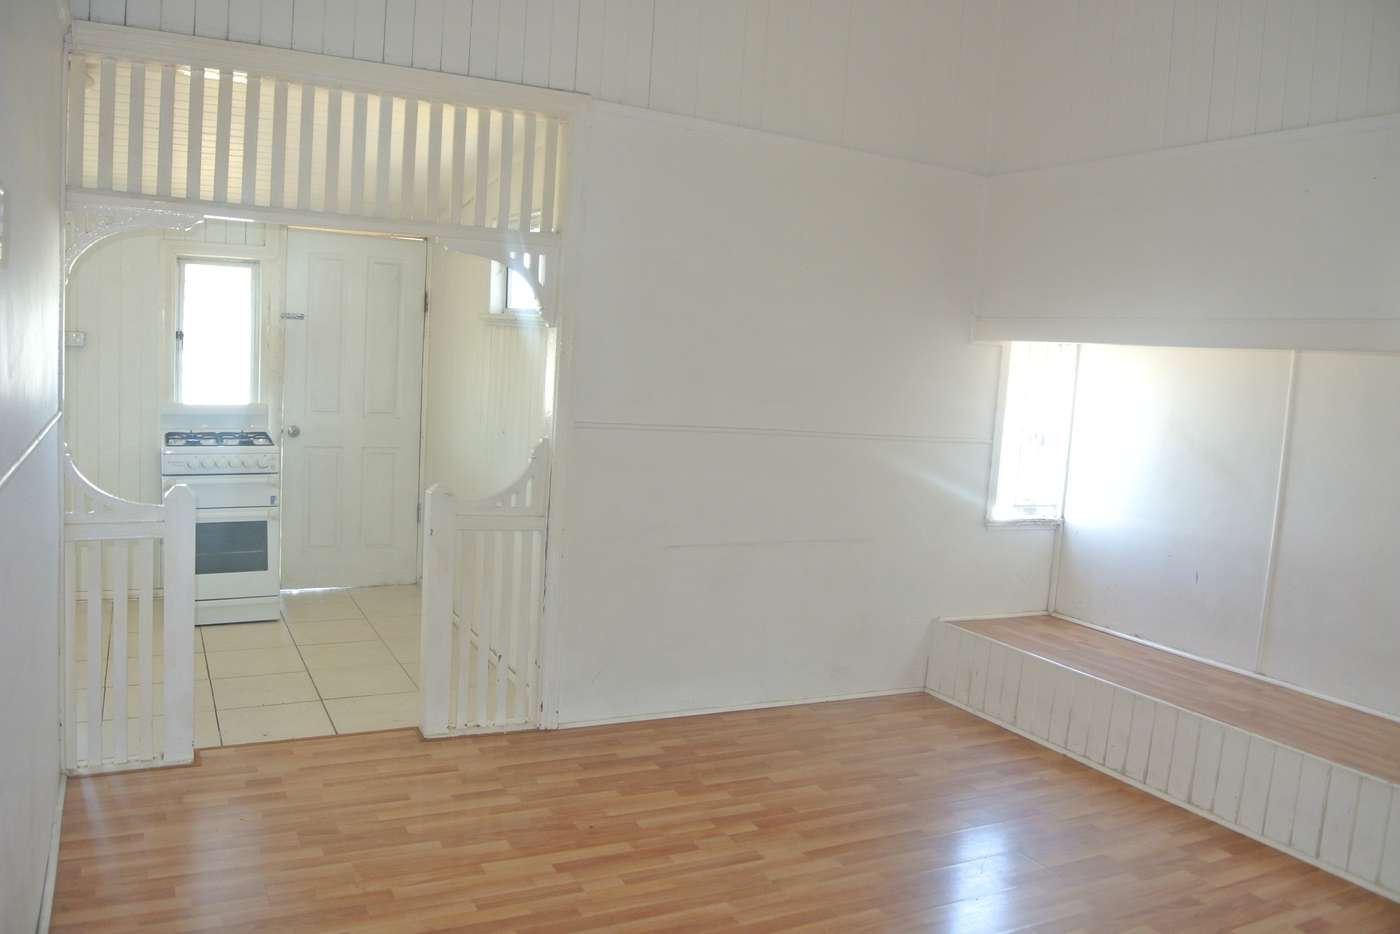 Main view of Homely unit listing, 4/52 Hawthorne Street, Woolloongabba QLD 4102